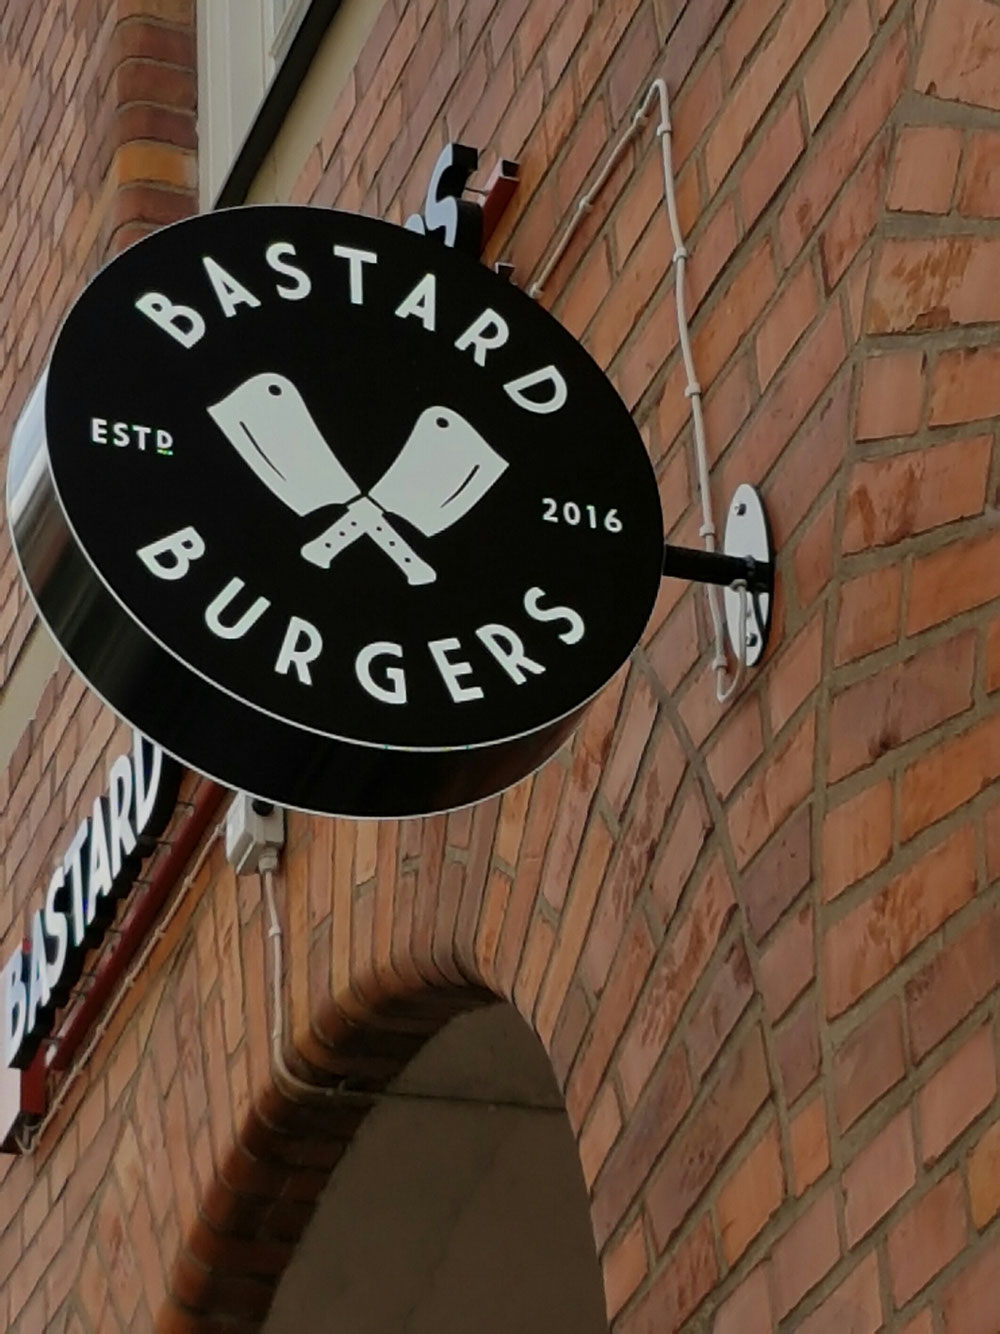 Bastard Burgers in Uppsala. Haw kuhl iz that....